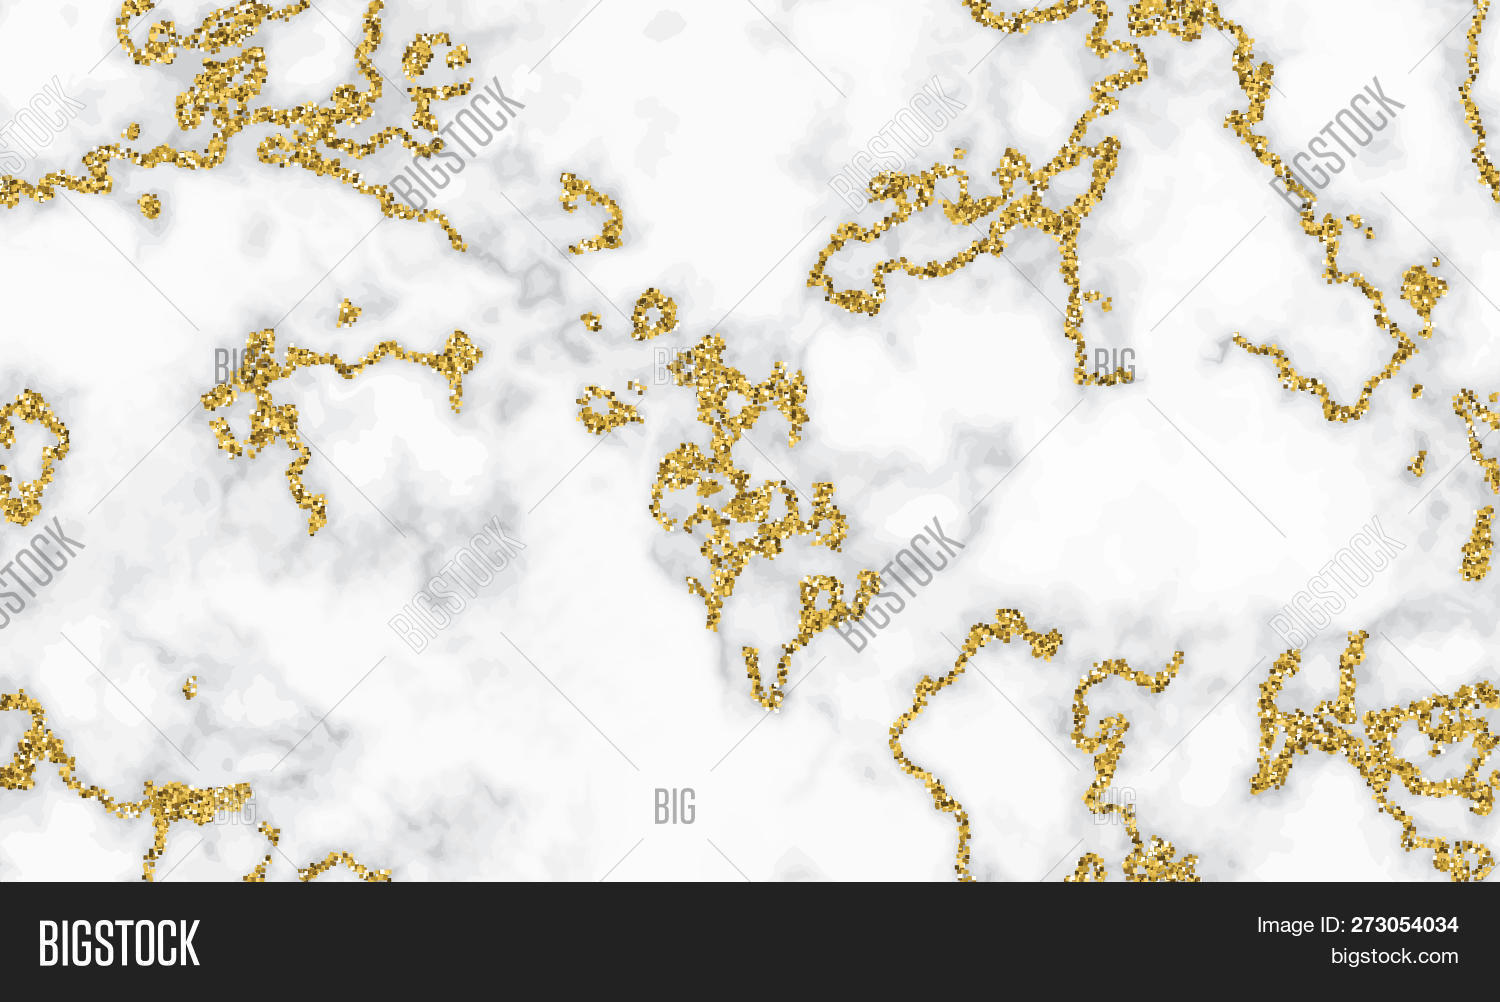 Gold Marble Texture Image Photo Free Trial Bigstock